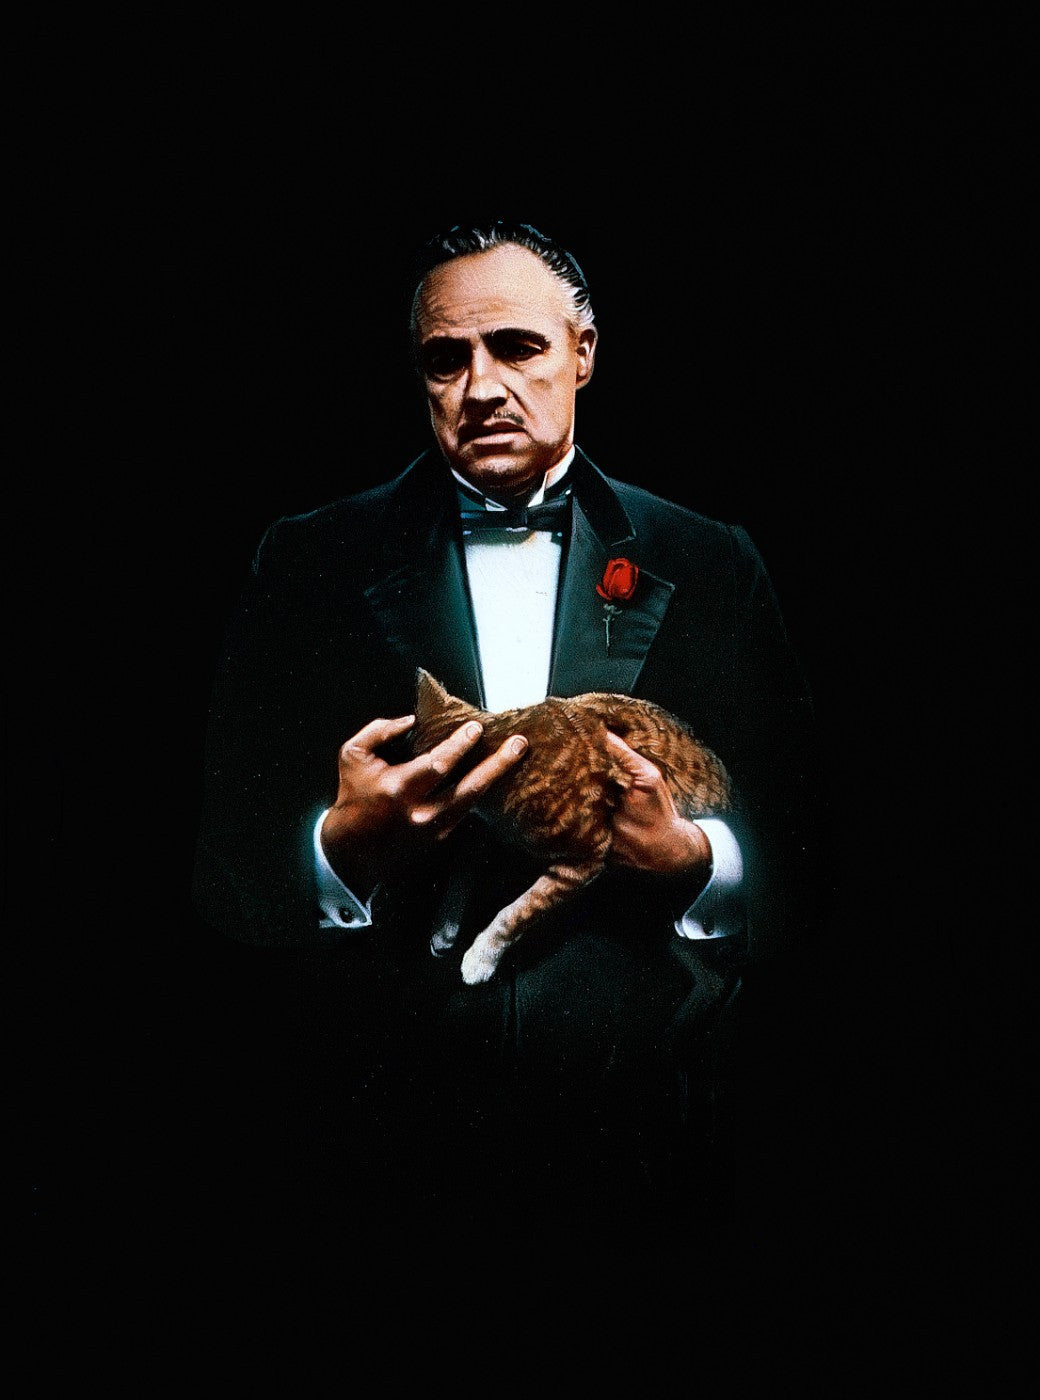 Painting marlon brando as don corleone in the godfather painting marlon brando as don corleone in the godfather hollywood collection art prints thecheapjerseys Choice Image